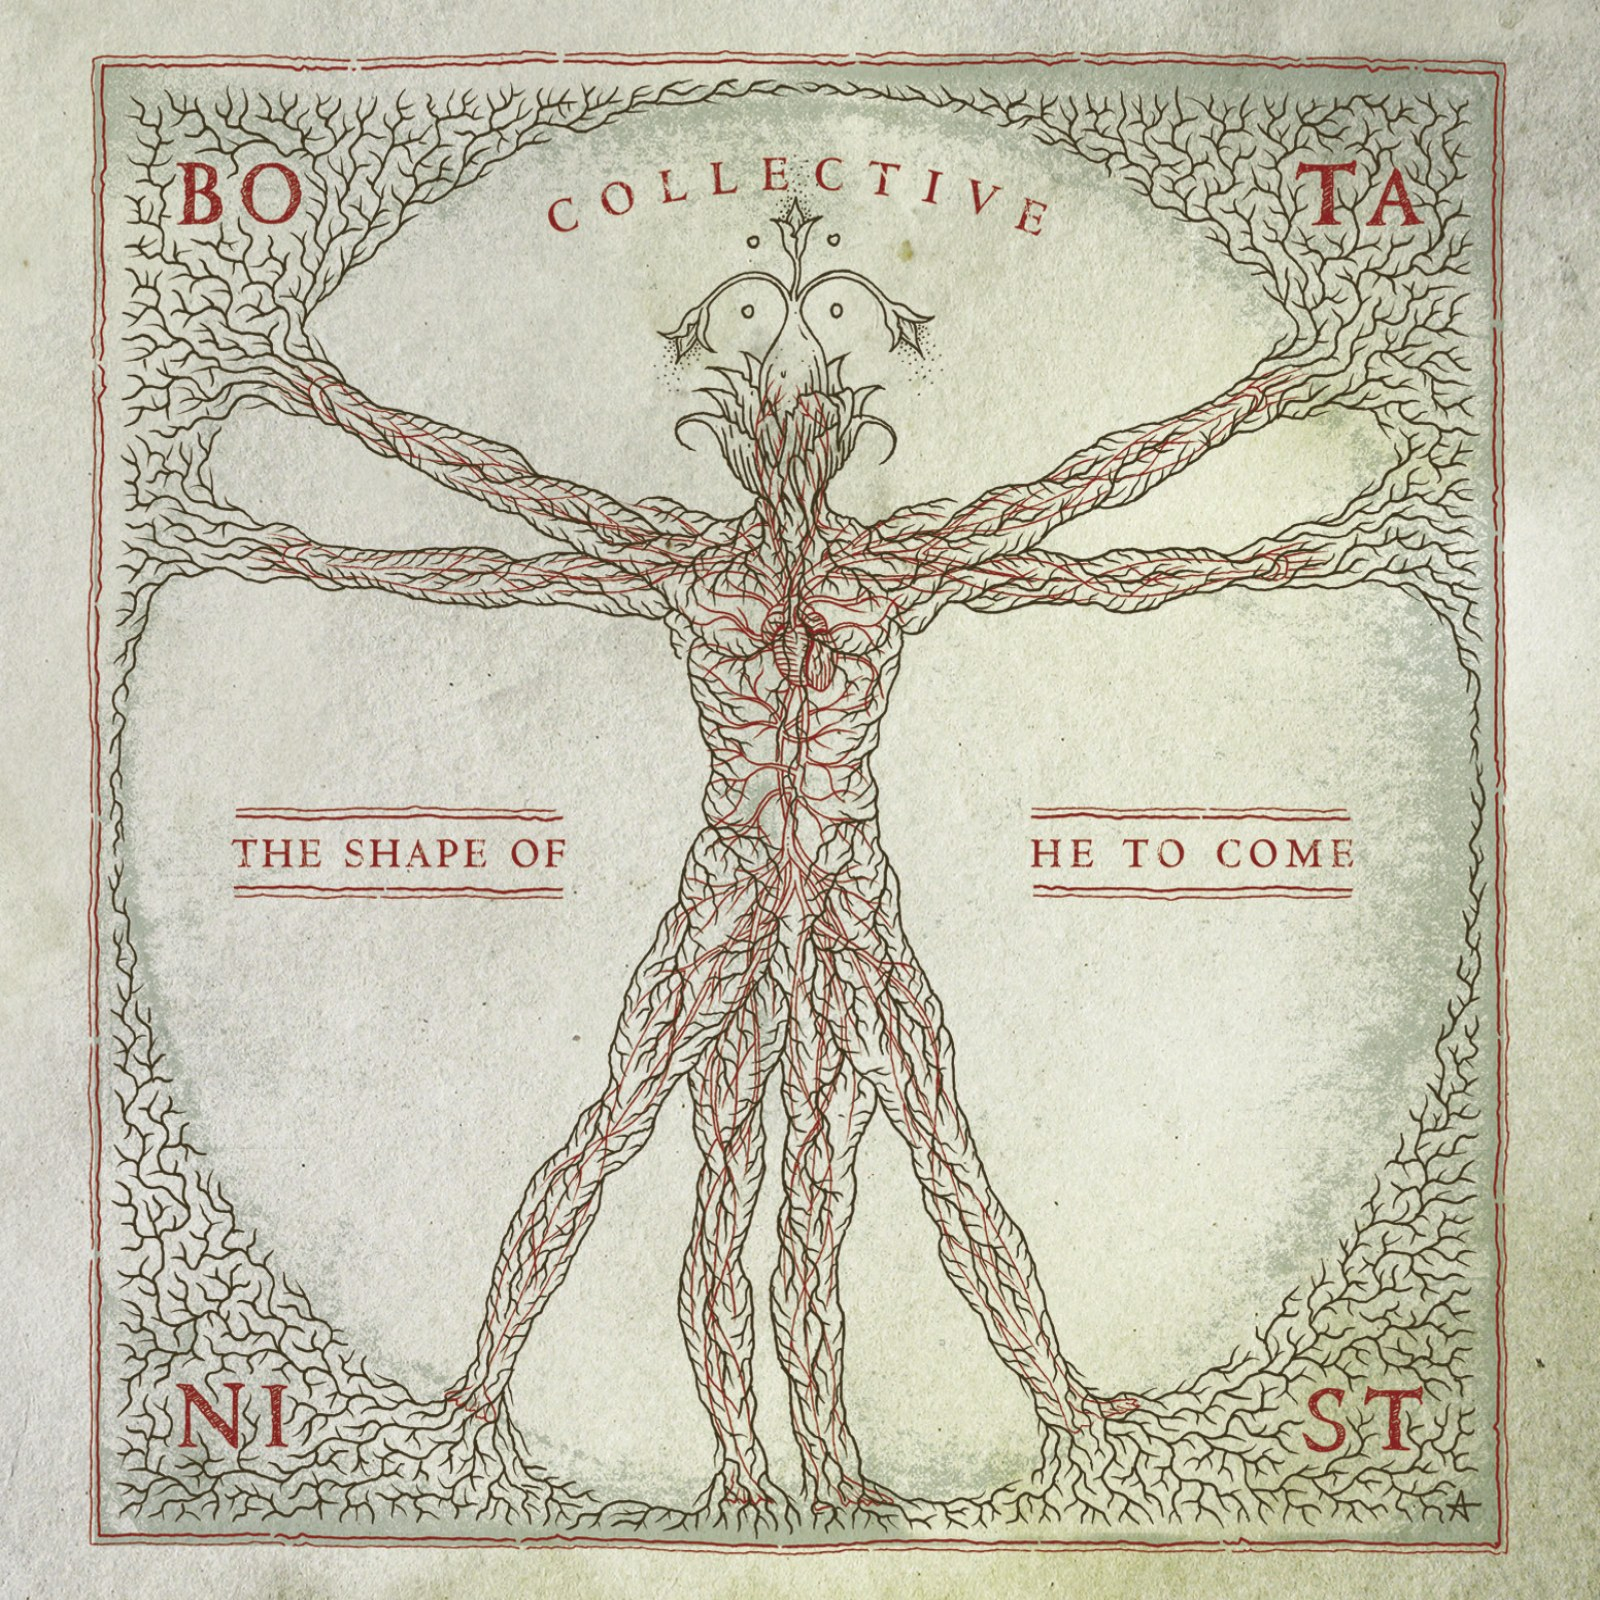 Review for Botanist - Collective: The Shape of He to Come